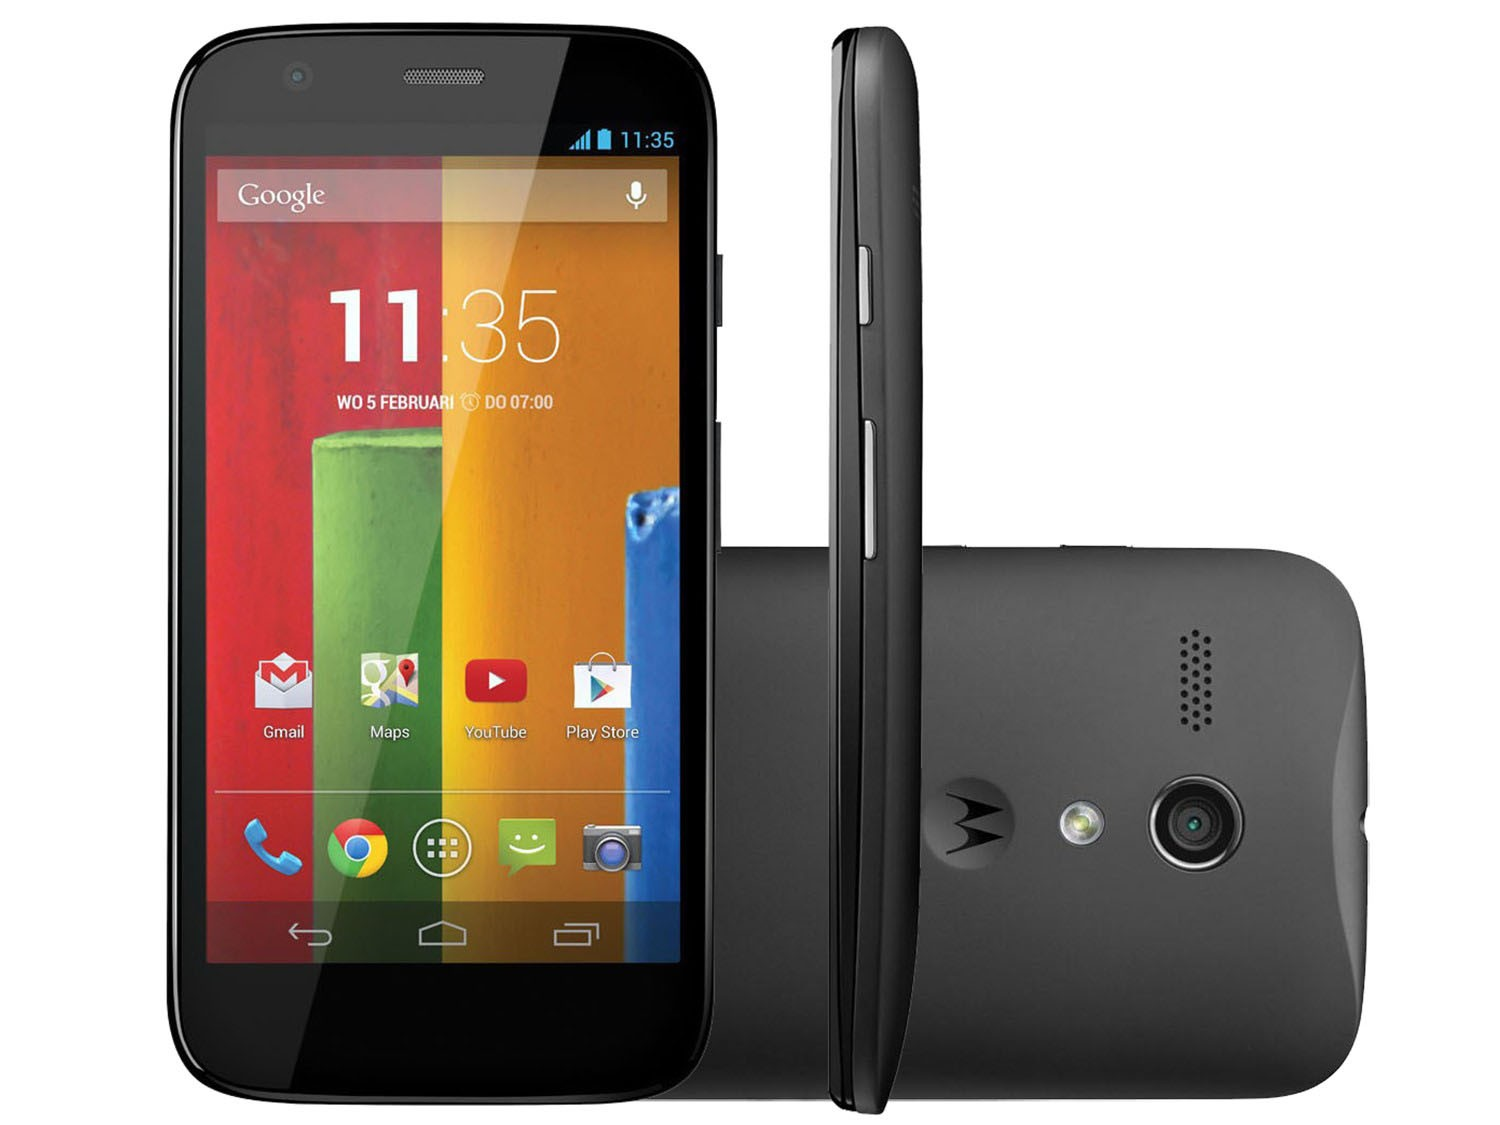 How to update Motorola Moto G to Android 6.0 Marshmallow